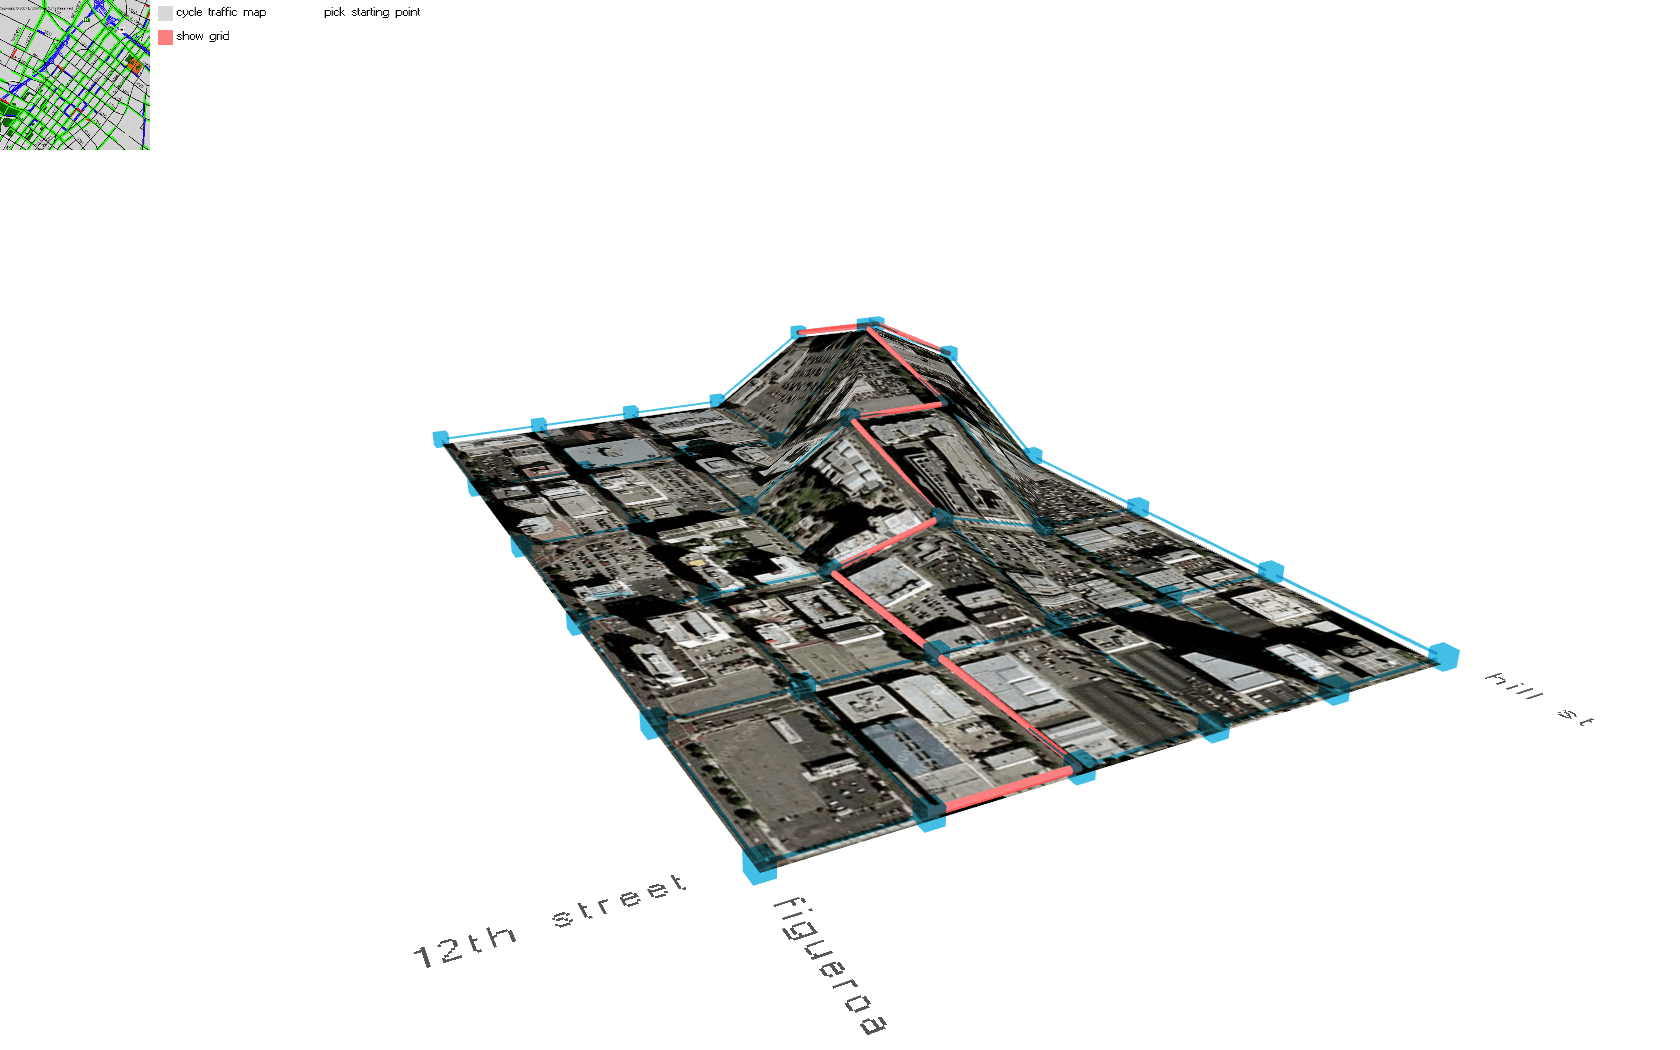 Time-asymmetry based on realtime traffic information from the ATSAC system, downtown LA. The slope of a selected path represents the speed difference compared to the opposite direction.